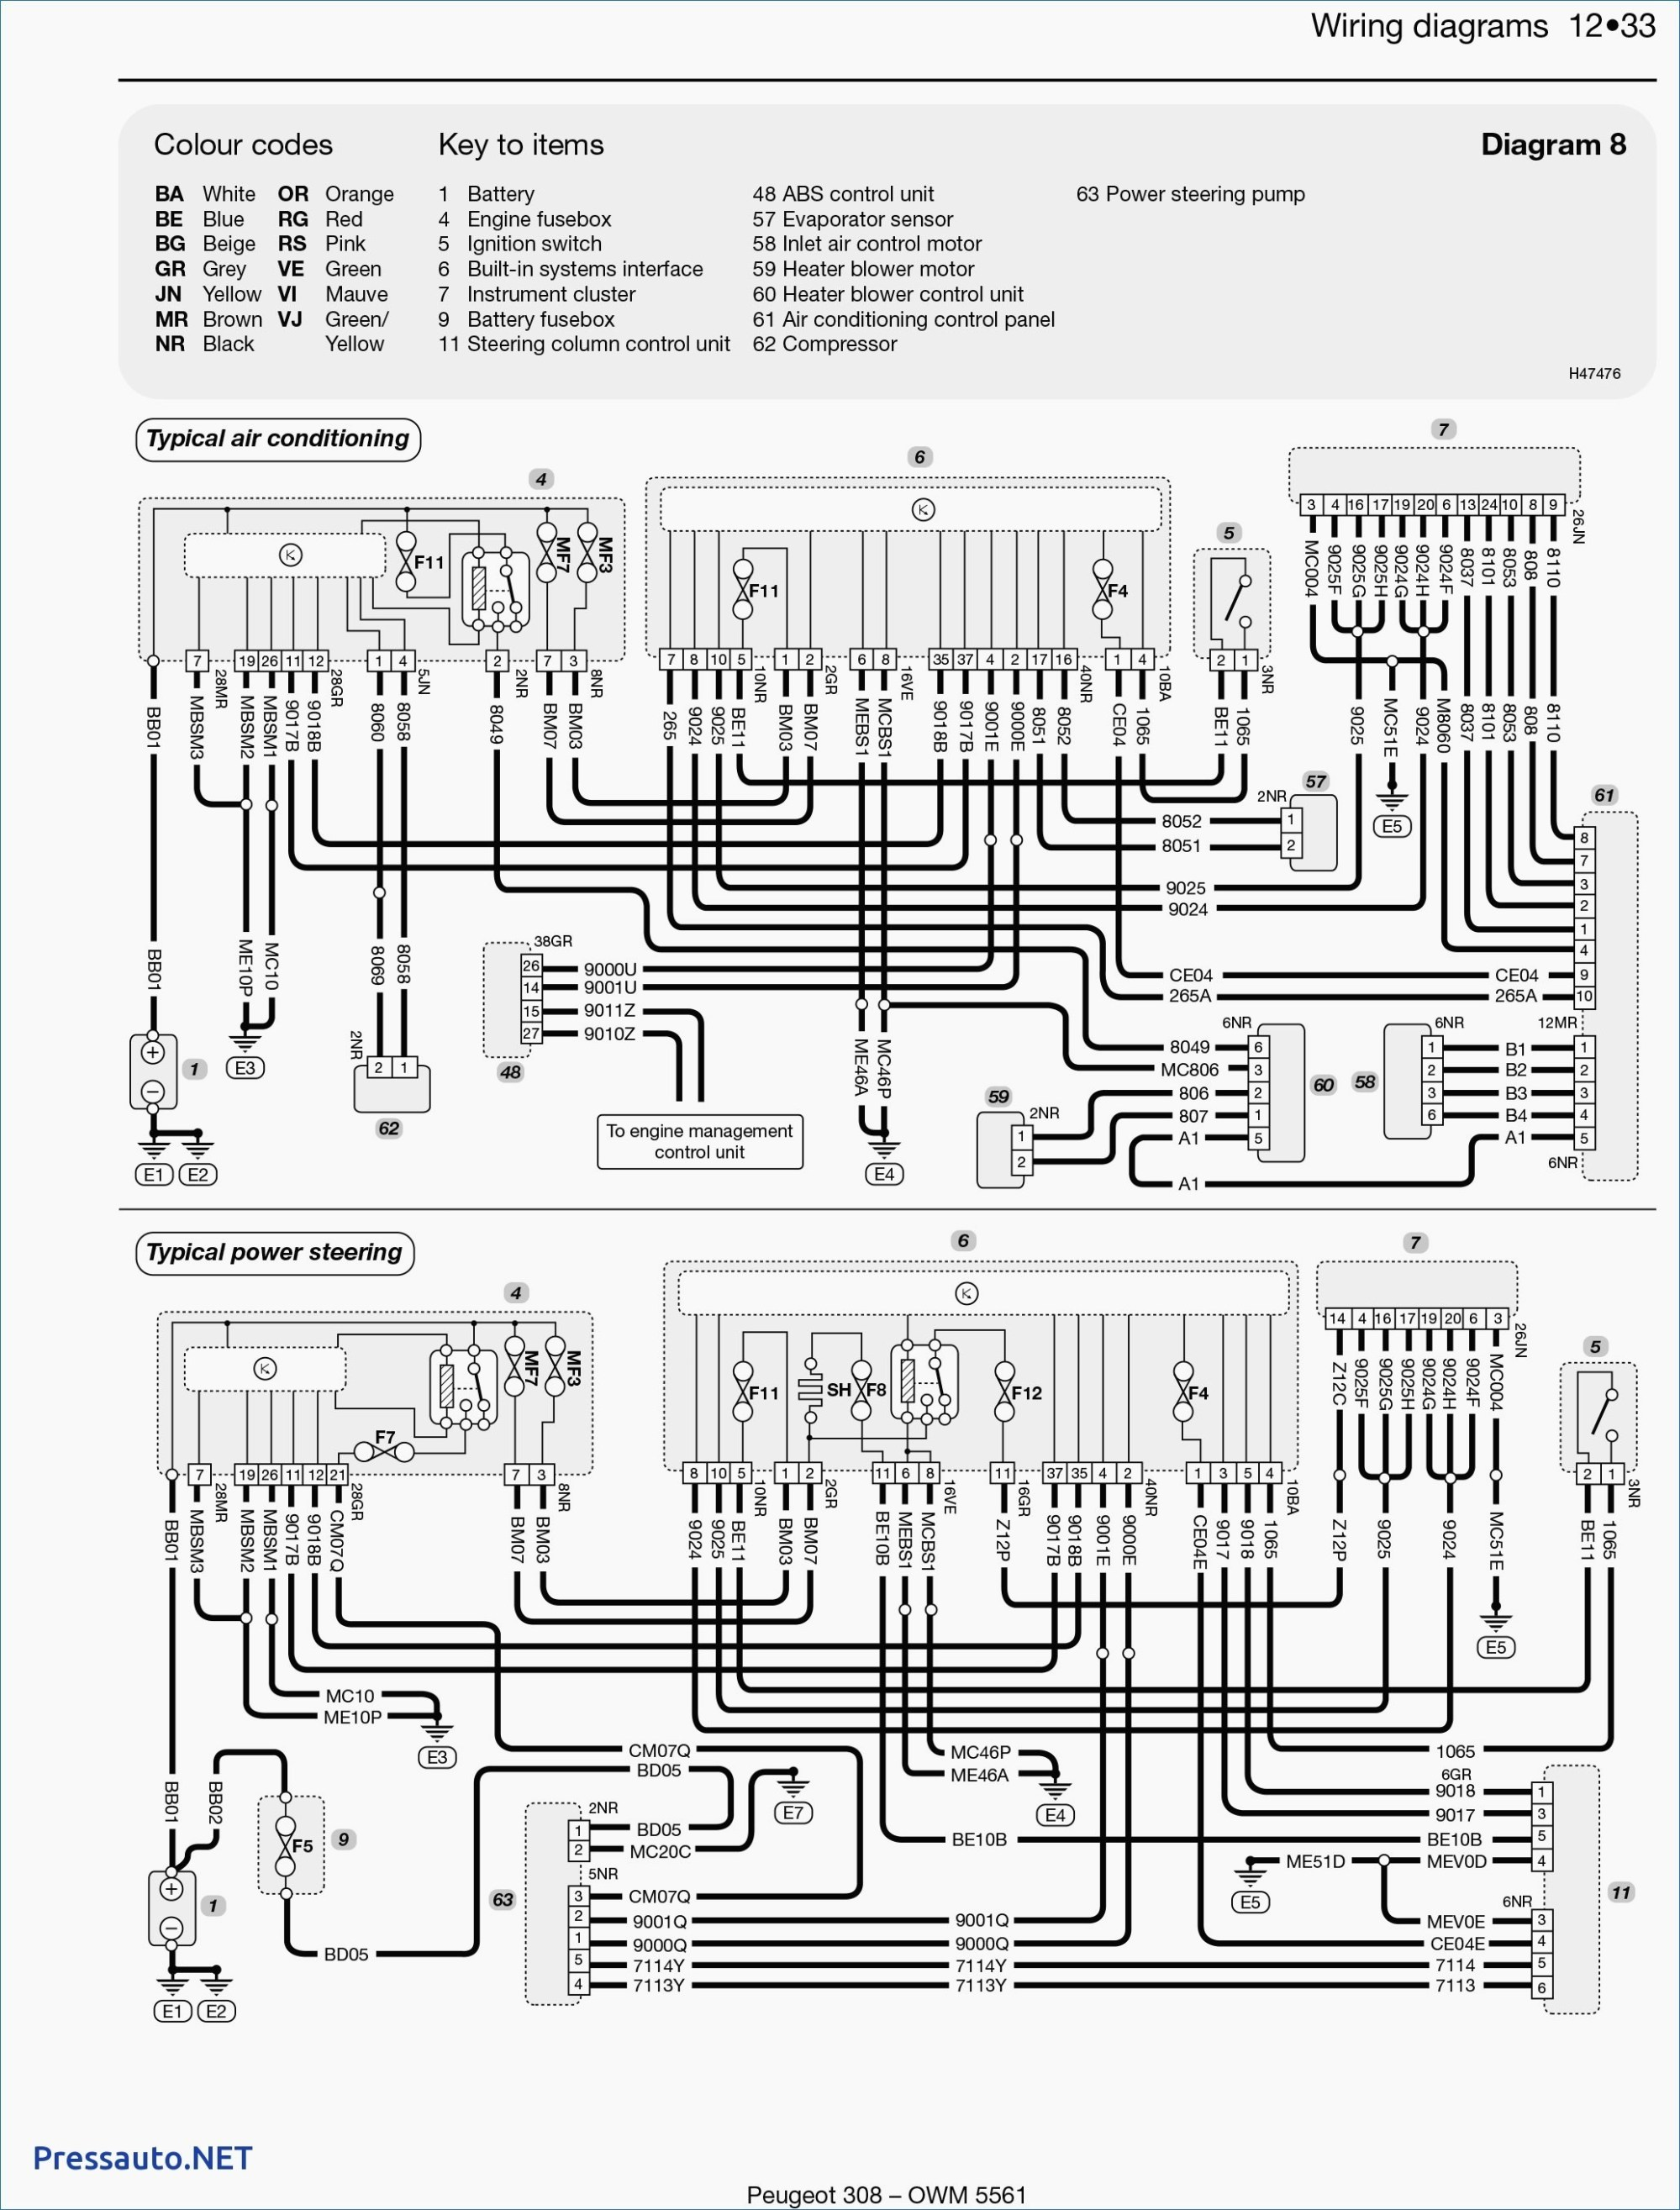 hight resolution of peugeot transmission diagrams wiring diagram view diagrams peugeot 207 engine diagram peugeot 206 map sensor peugeot